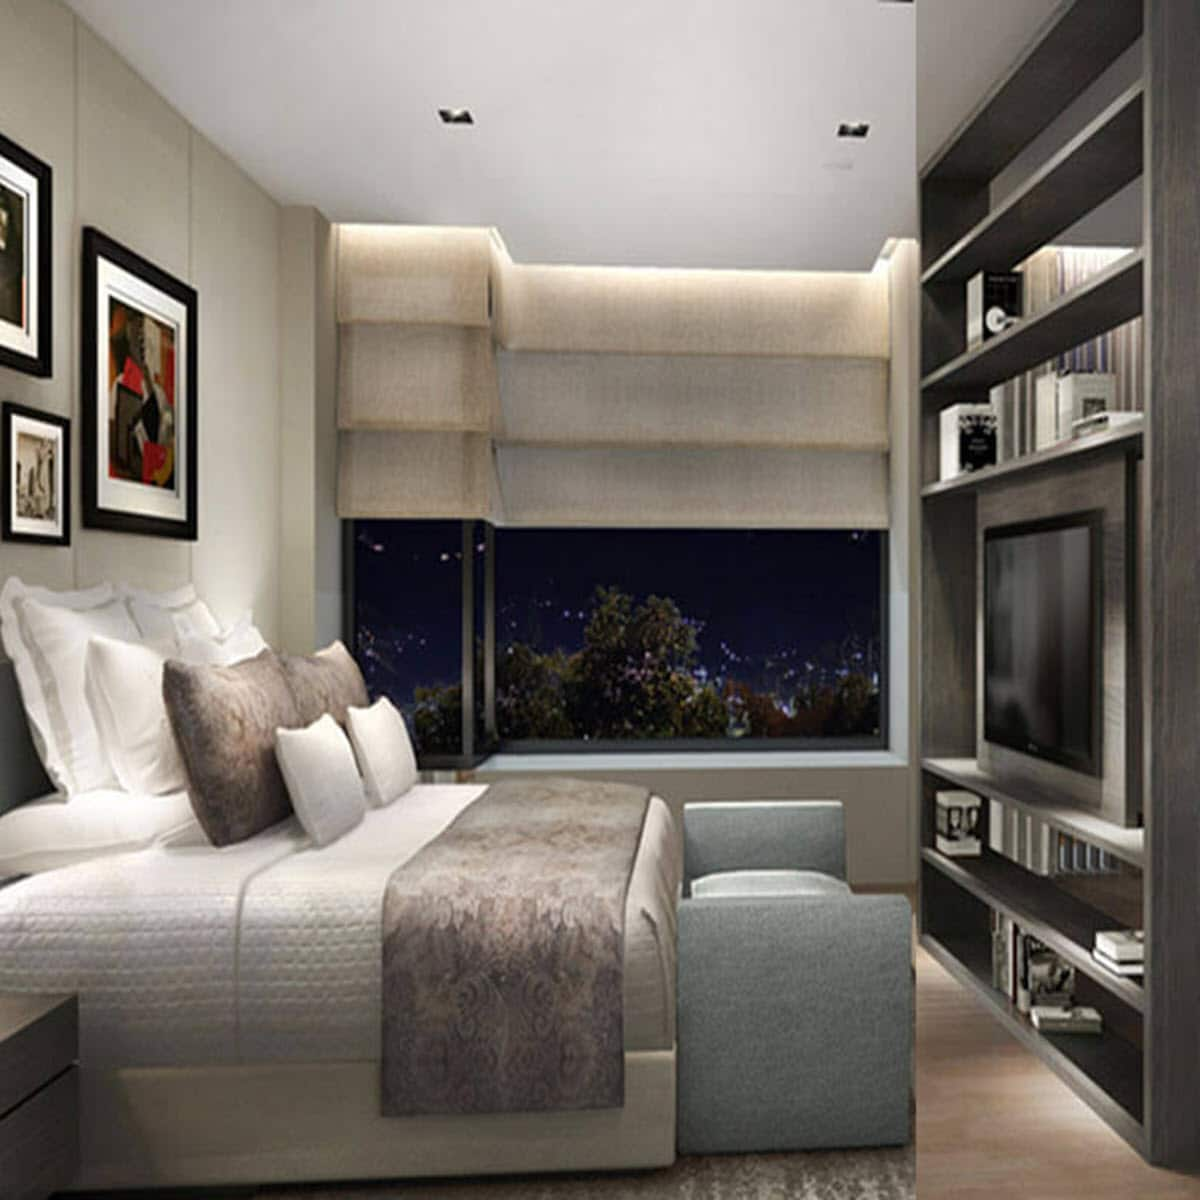 Feature Wall Design - TV Feature Wall